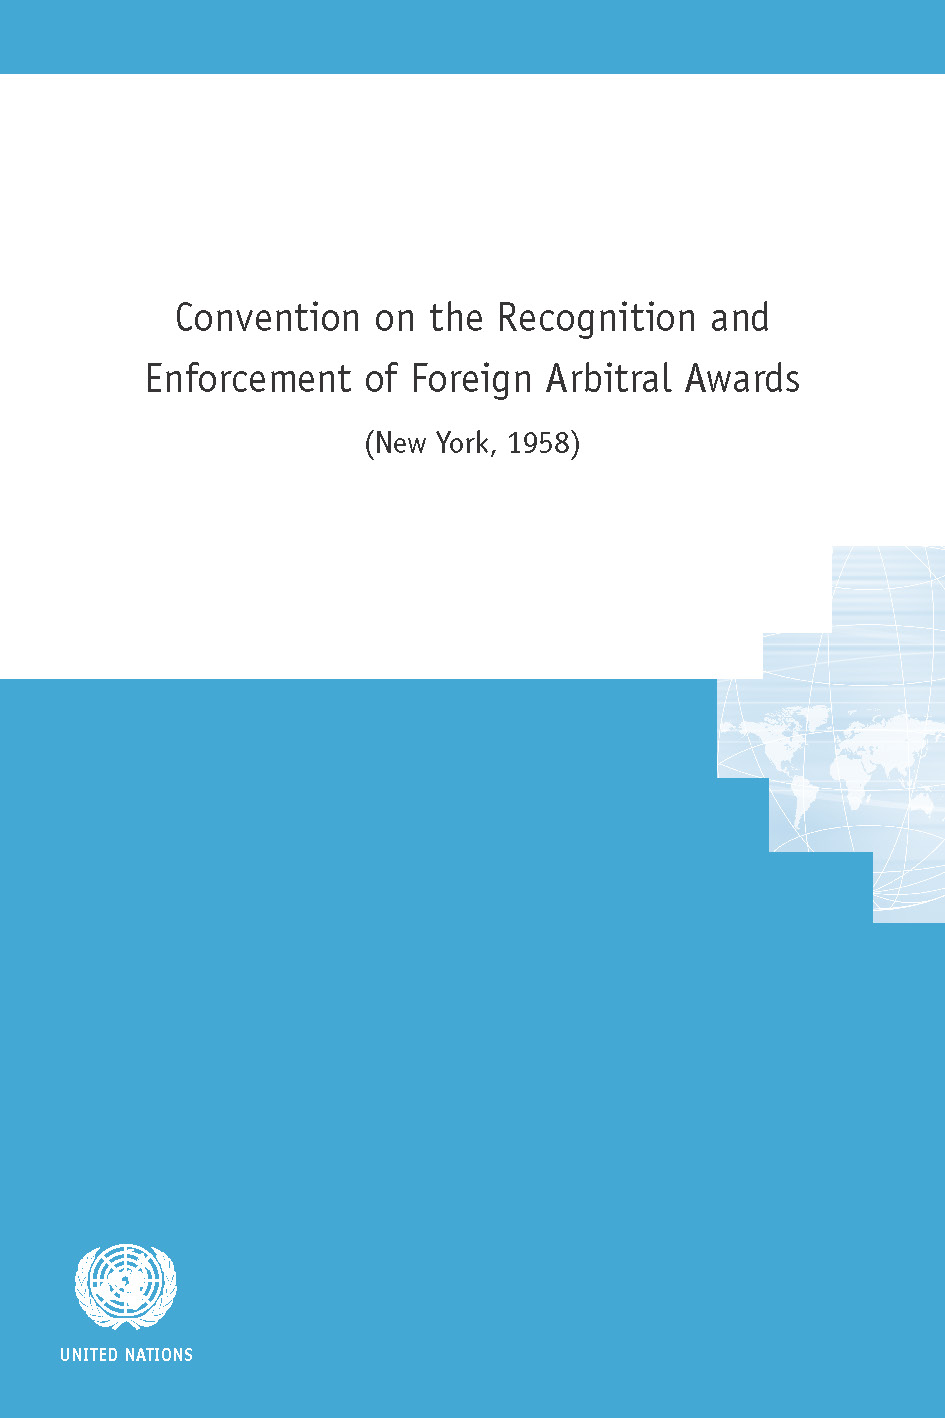 Text of the NY convention in English